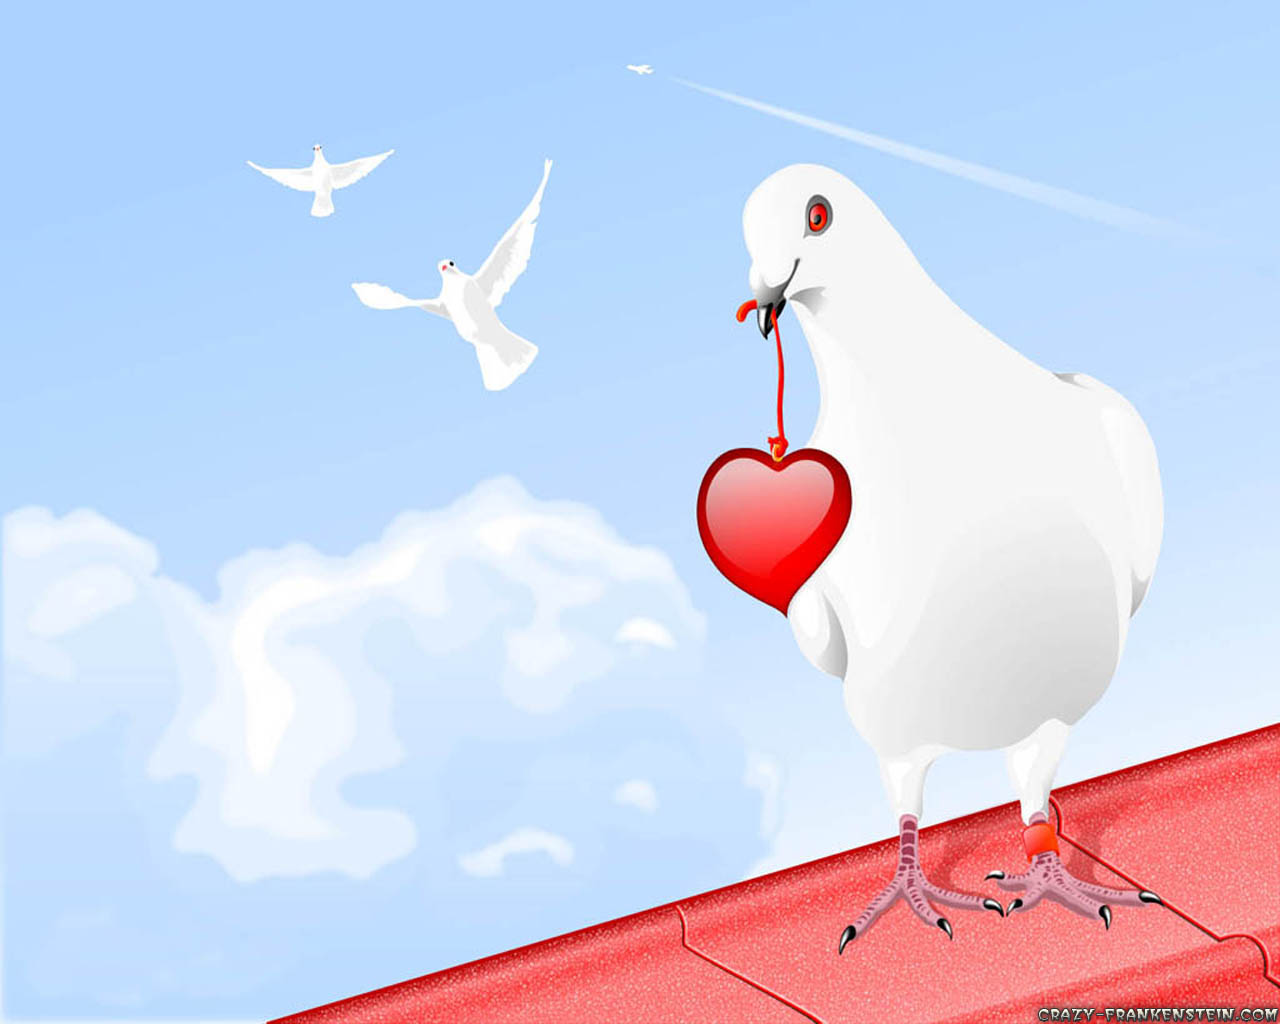 http://3.bp.blogspot.com/-NMyKCcINyvs/Ty3D-i35K4I/AAAAAAAAAOE/agaDaAqCttw/s1600/white-pigeon-red-heart-1280x1024-love-wallpapers.jpg